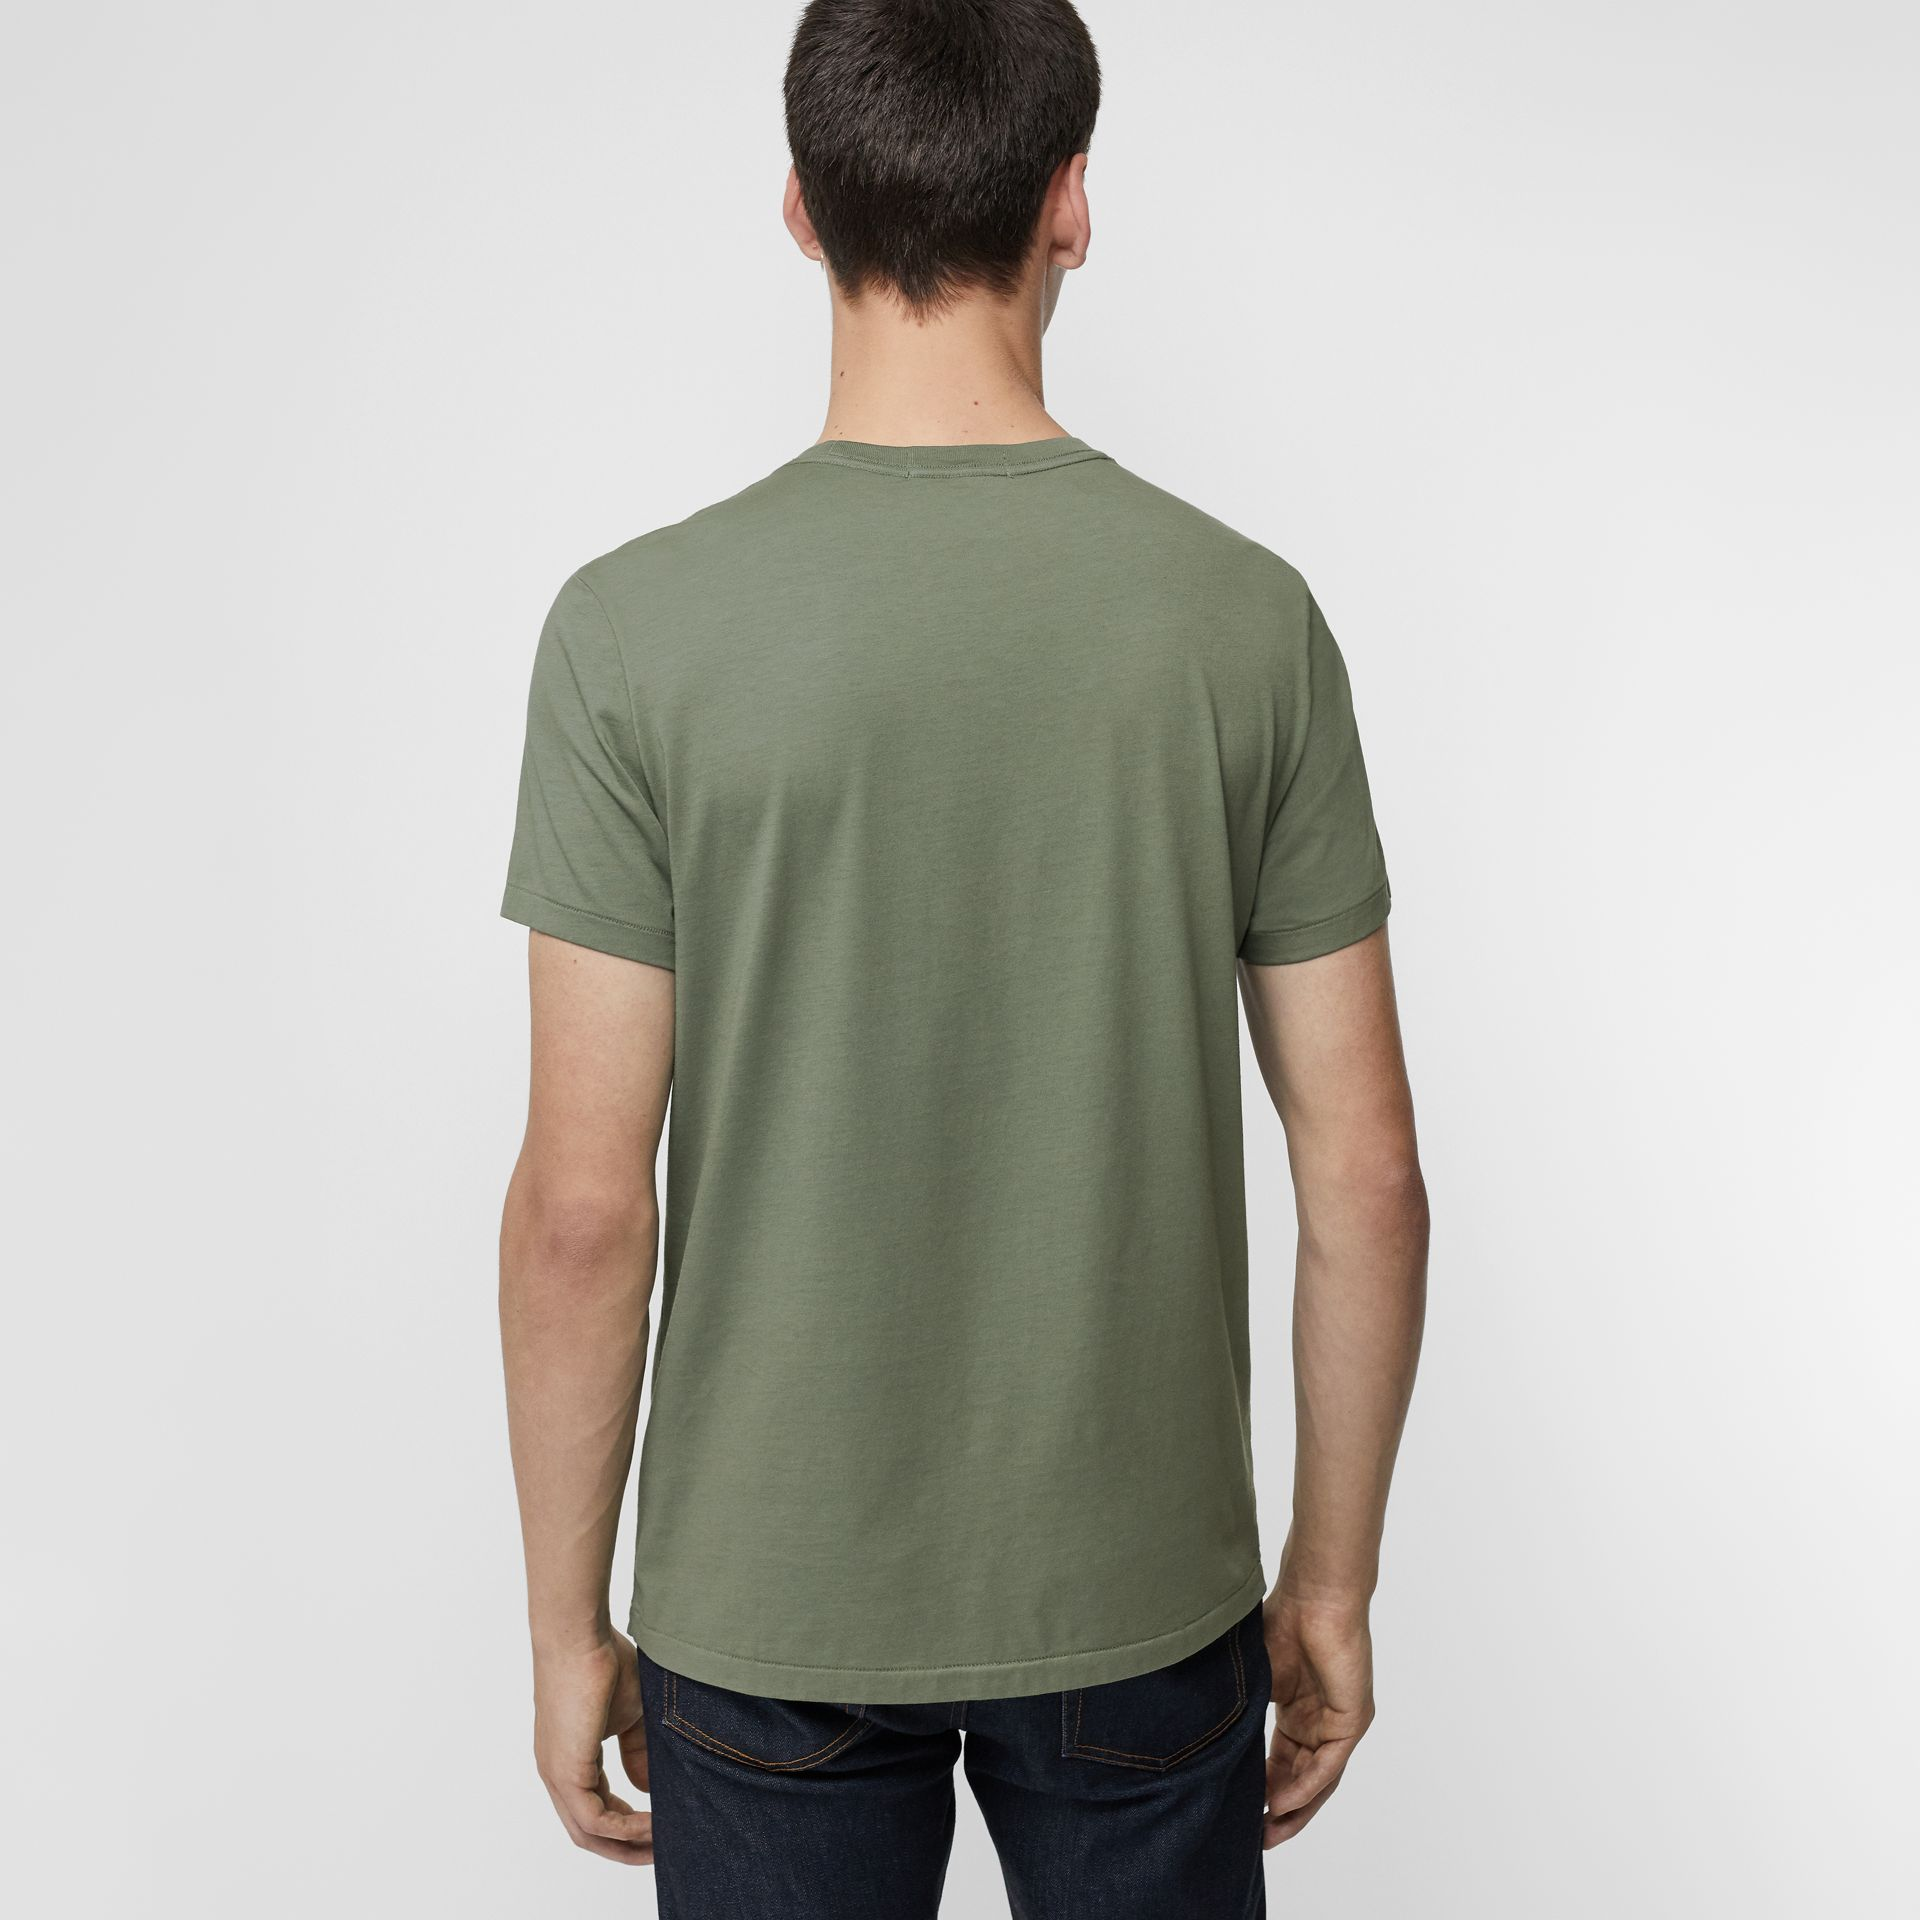 Cotton T-shirt in Clay Green - Men | Burberry Hong Kong - gallery image 2